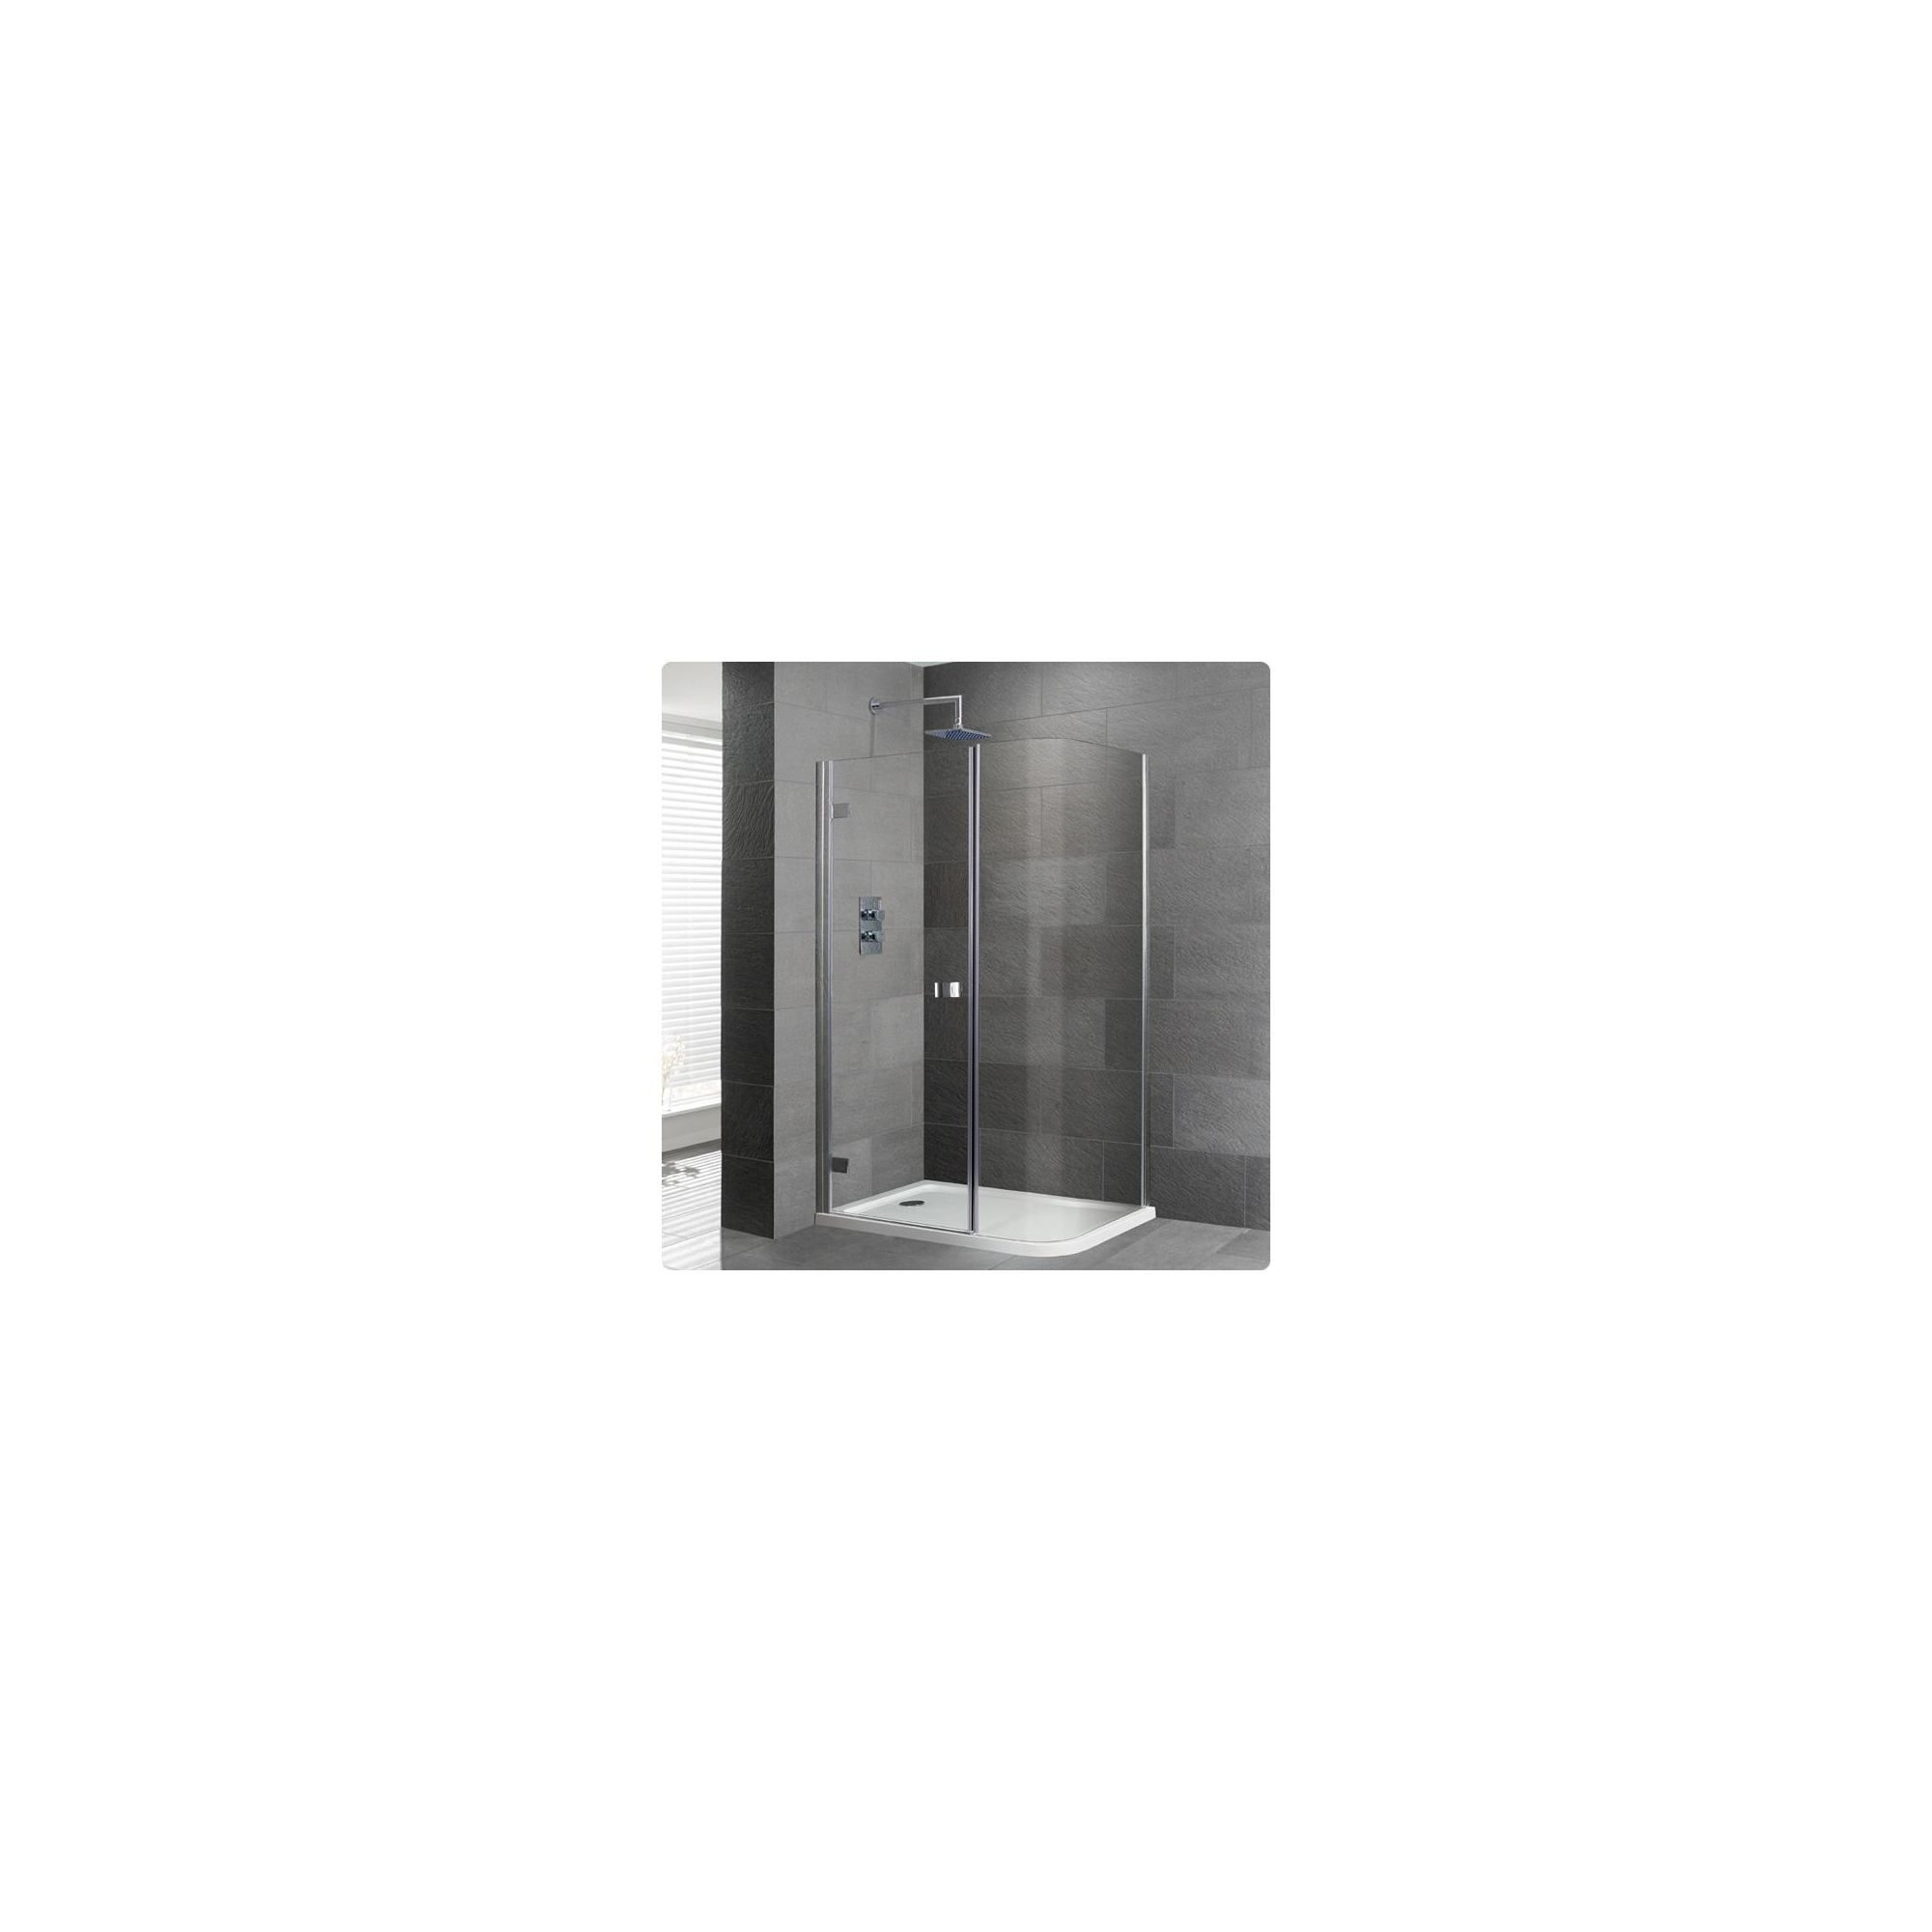 Duchy Select Silver Curved Corner Shower Enclosure 1200mm x 800mm, Standard Tray, 6mm Glass at Tescos Direct